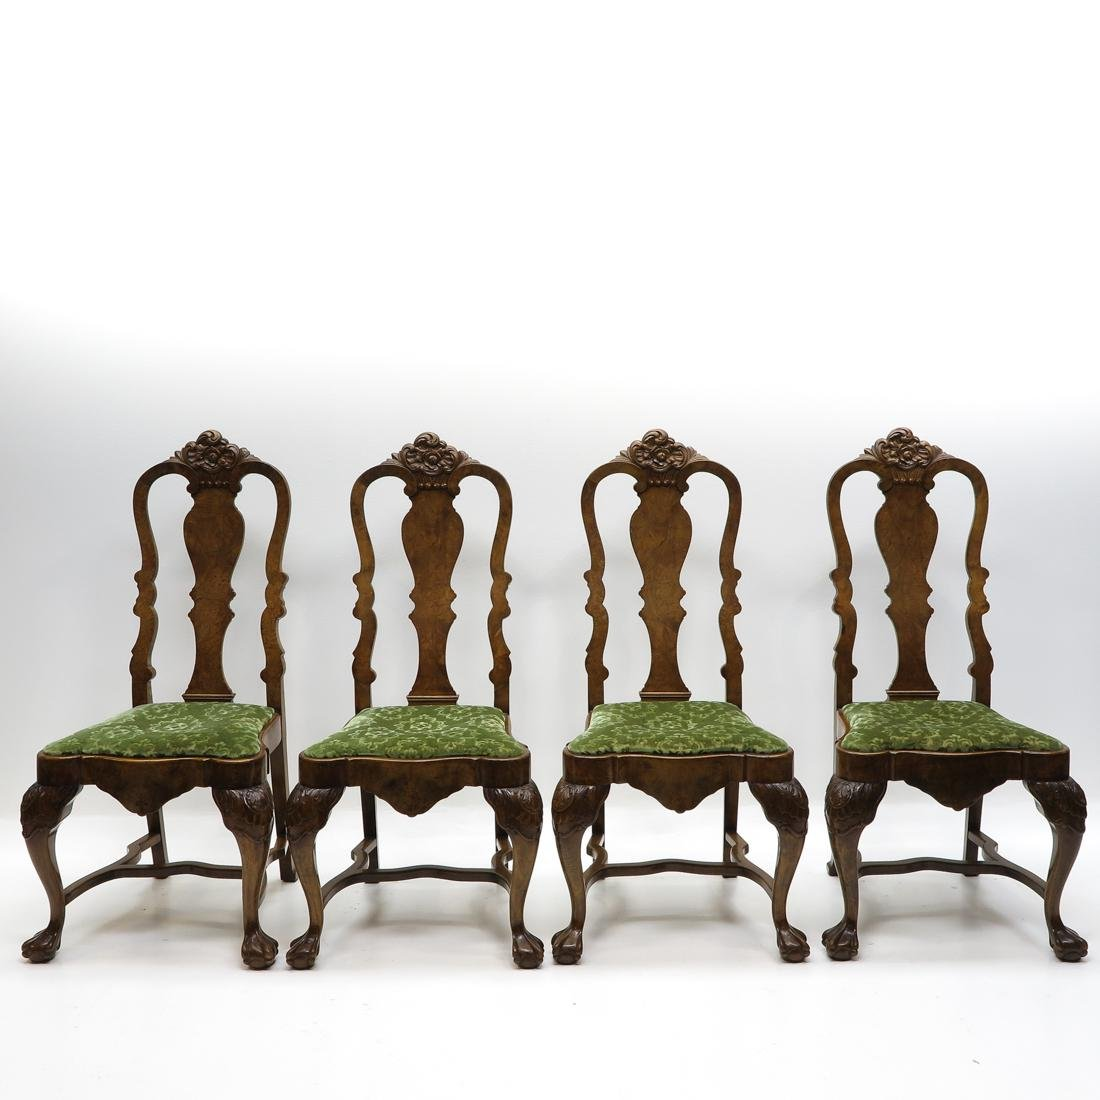 Lot of 4 Chippendale Chairs